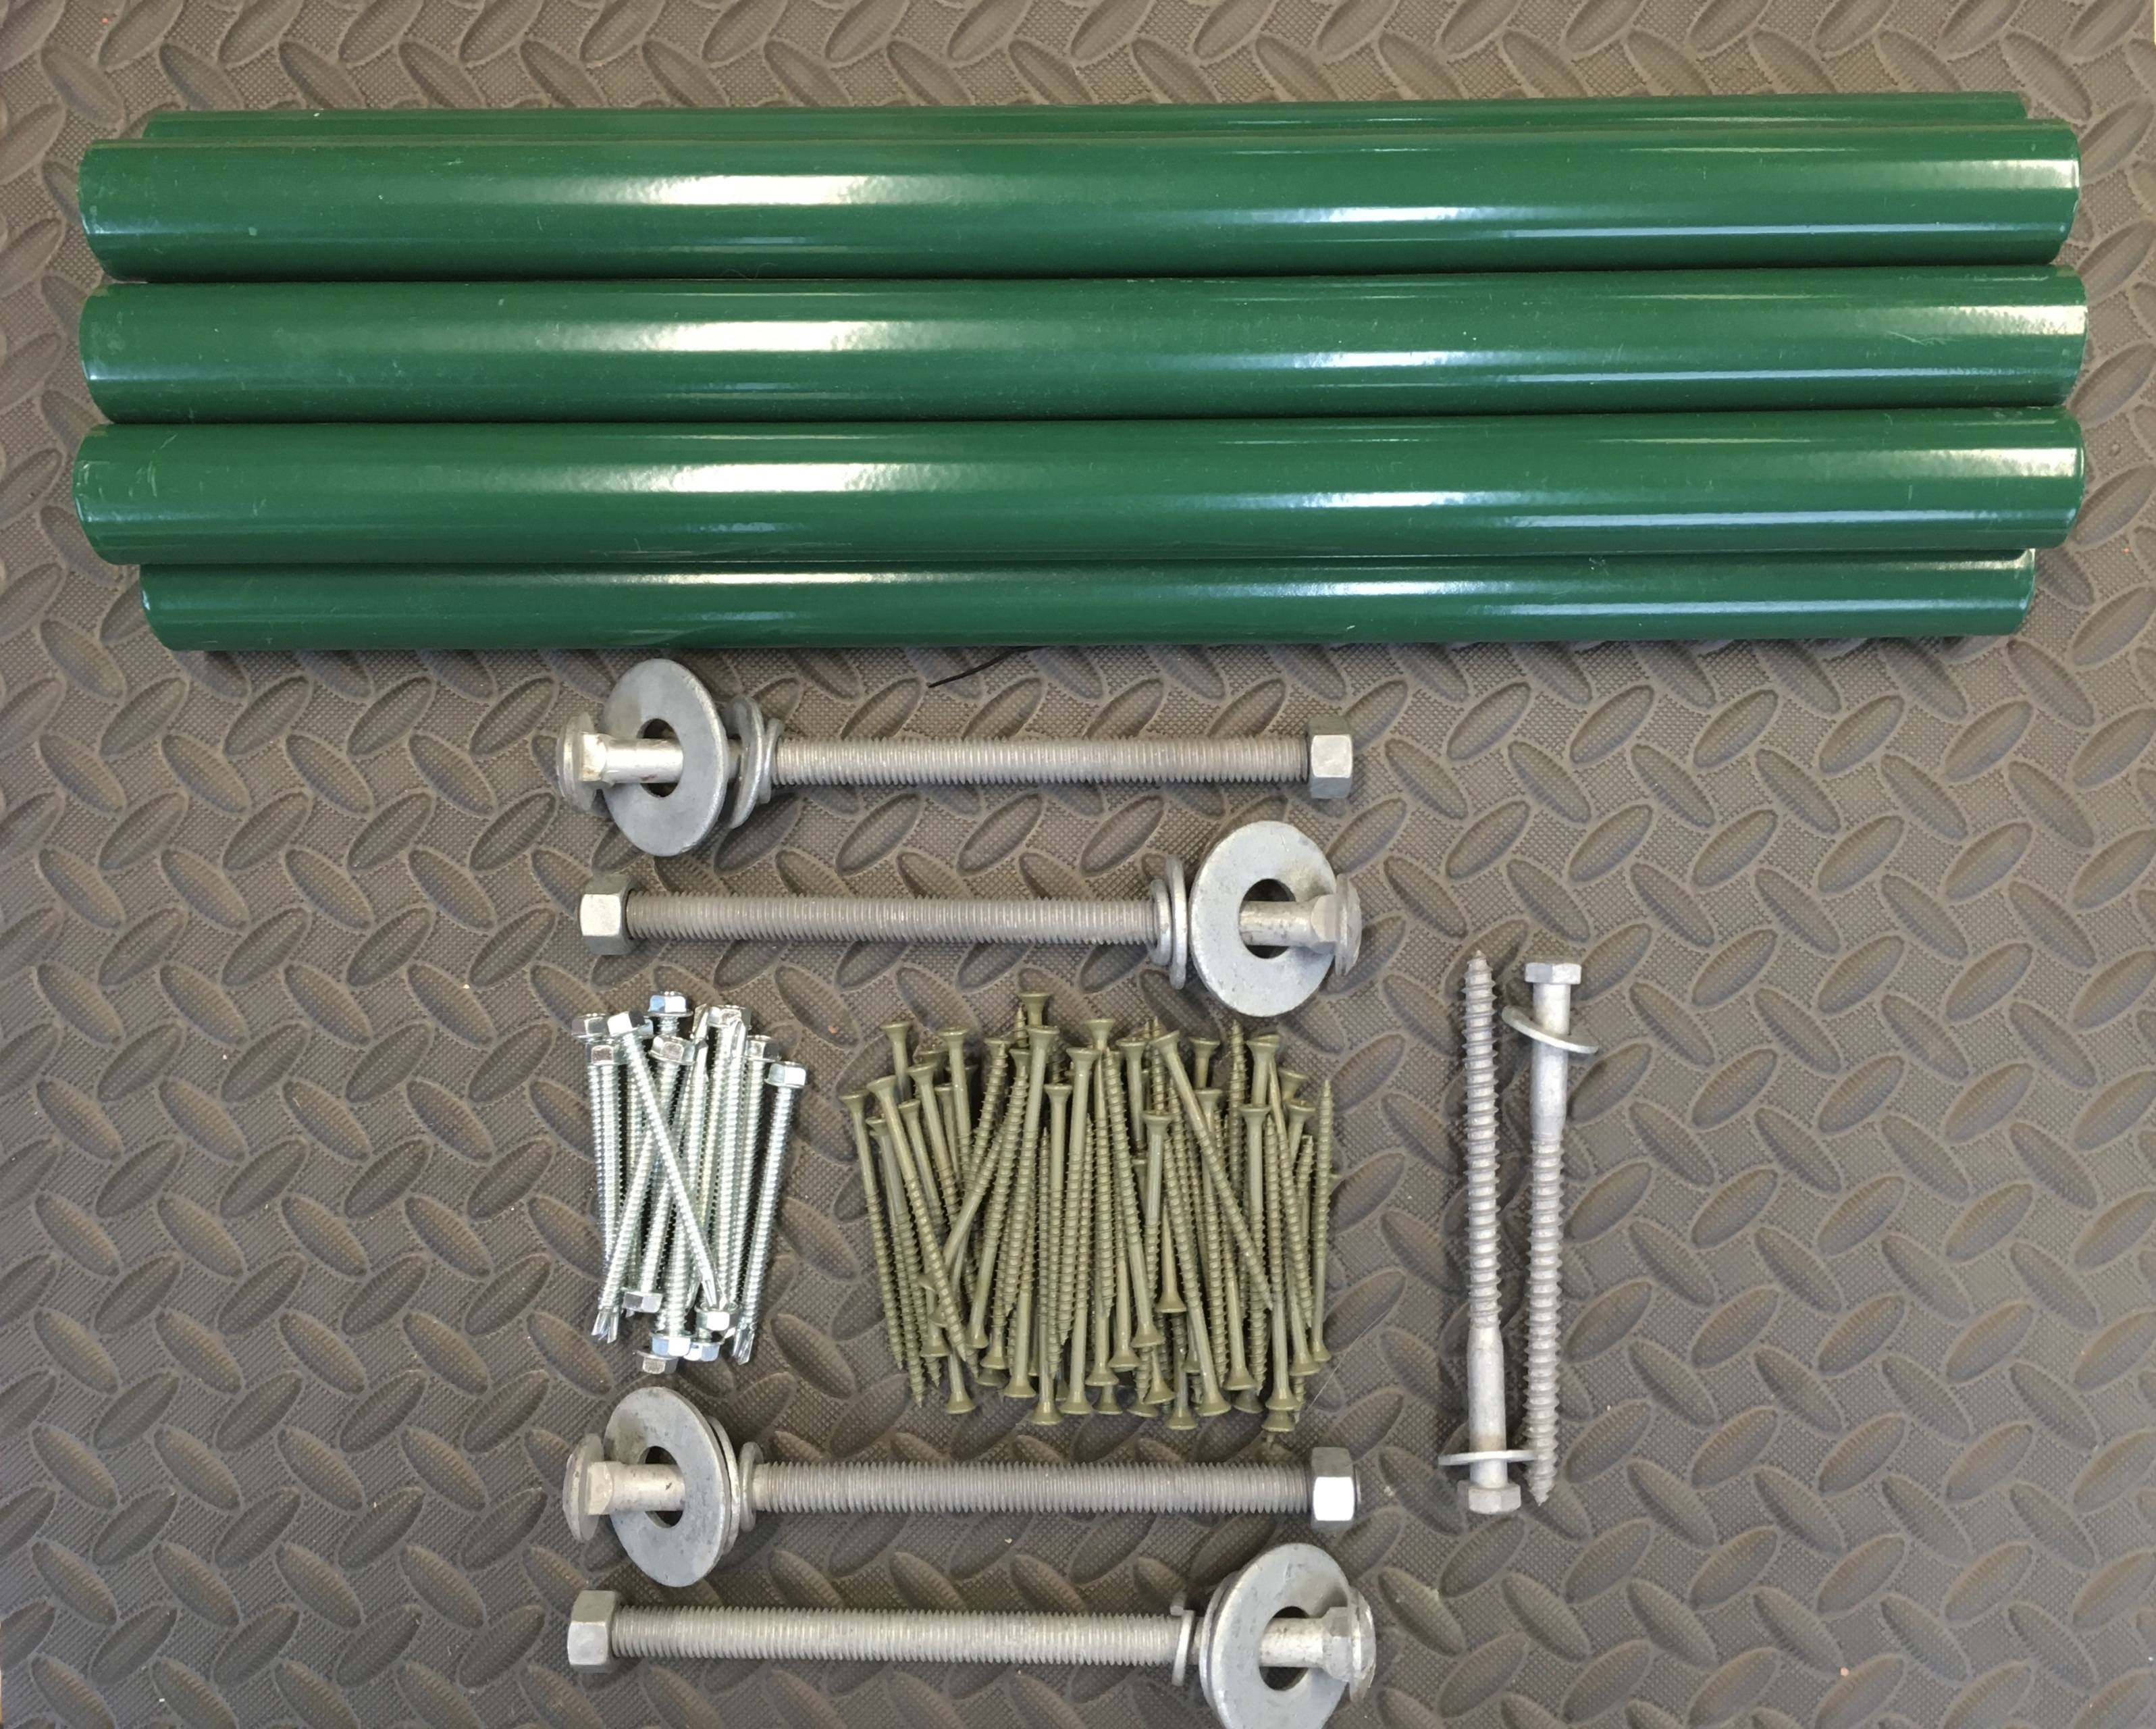 Diy Monkey Bar Add On Hardware Kit